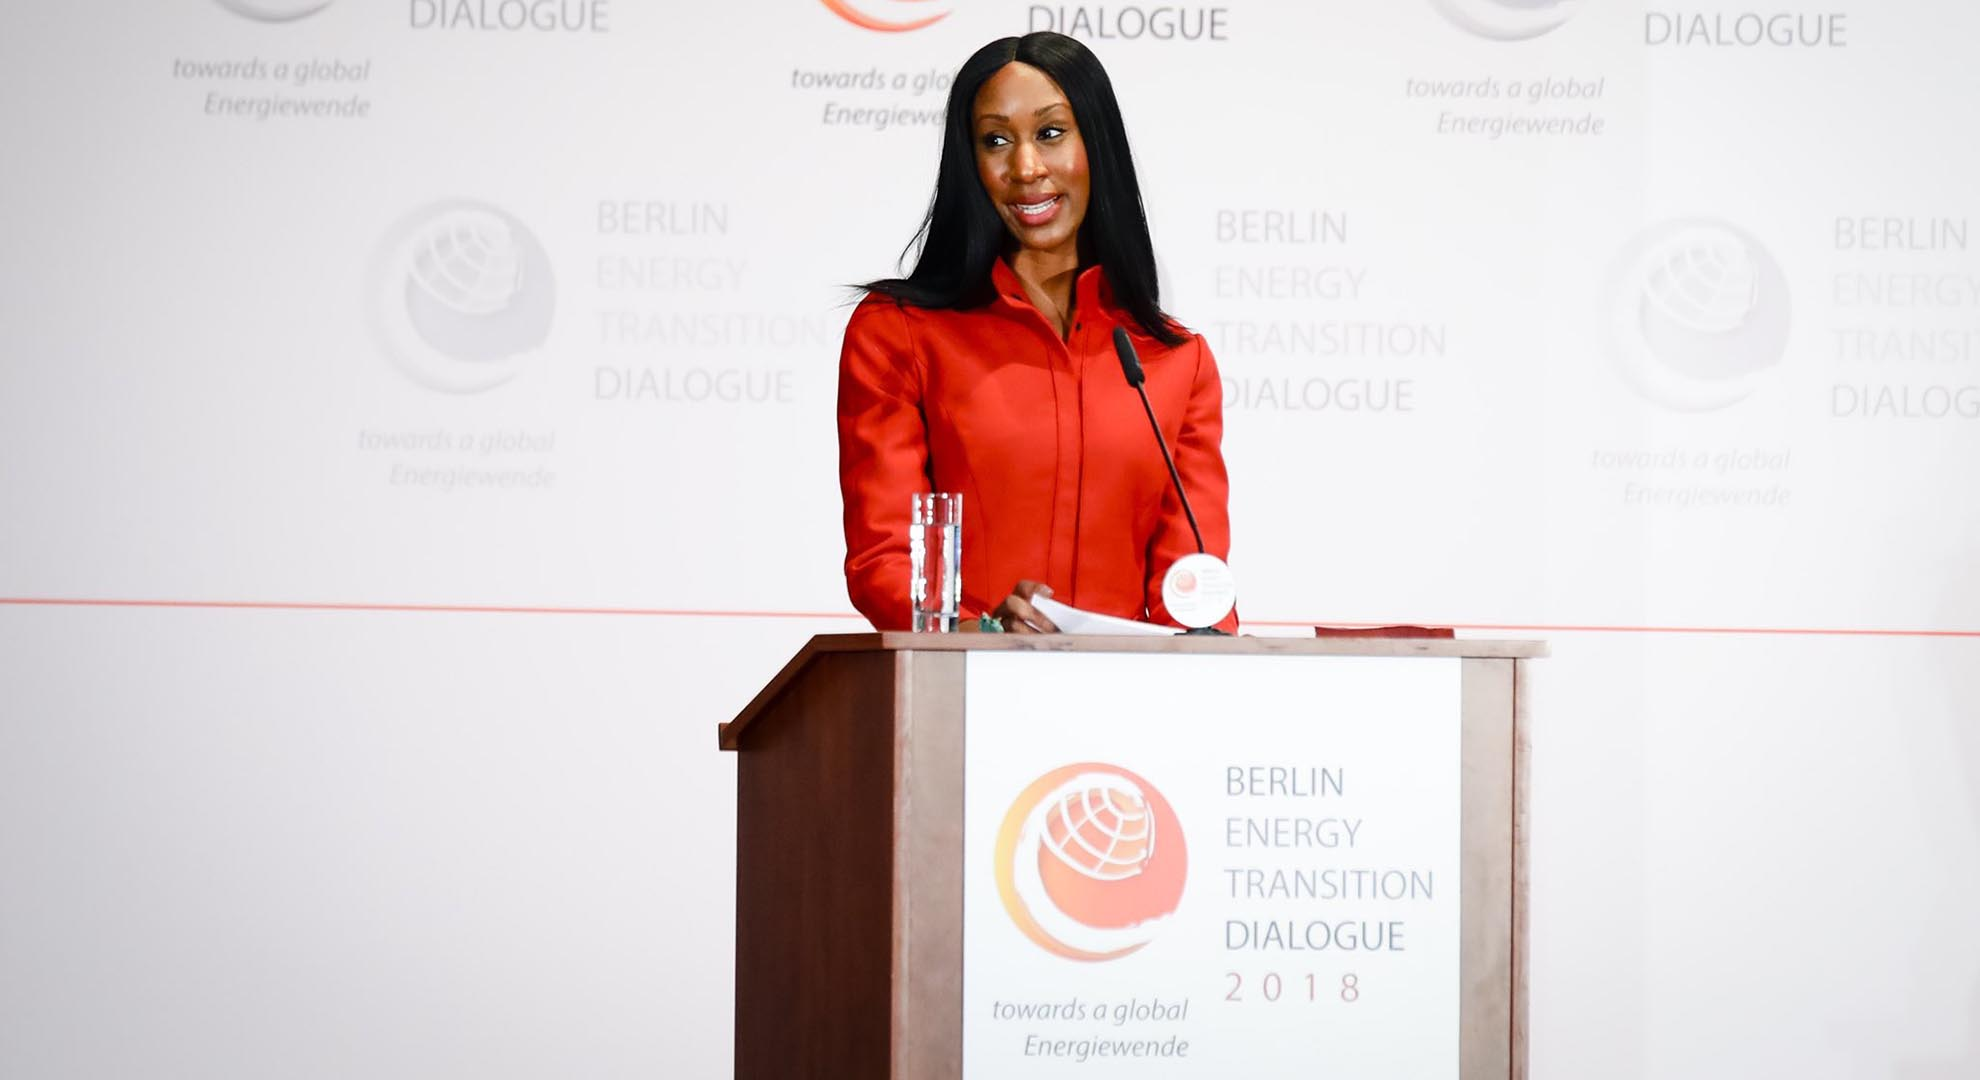 Bakulu Power founder Lucia Bakulumpagi-Wamala speaks about her experience with this organization, which bets for clean energy